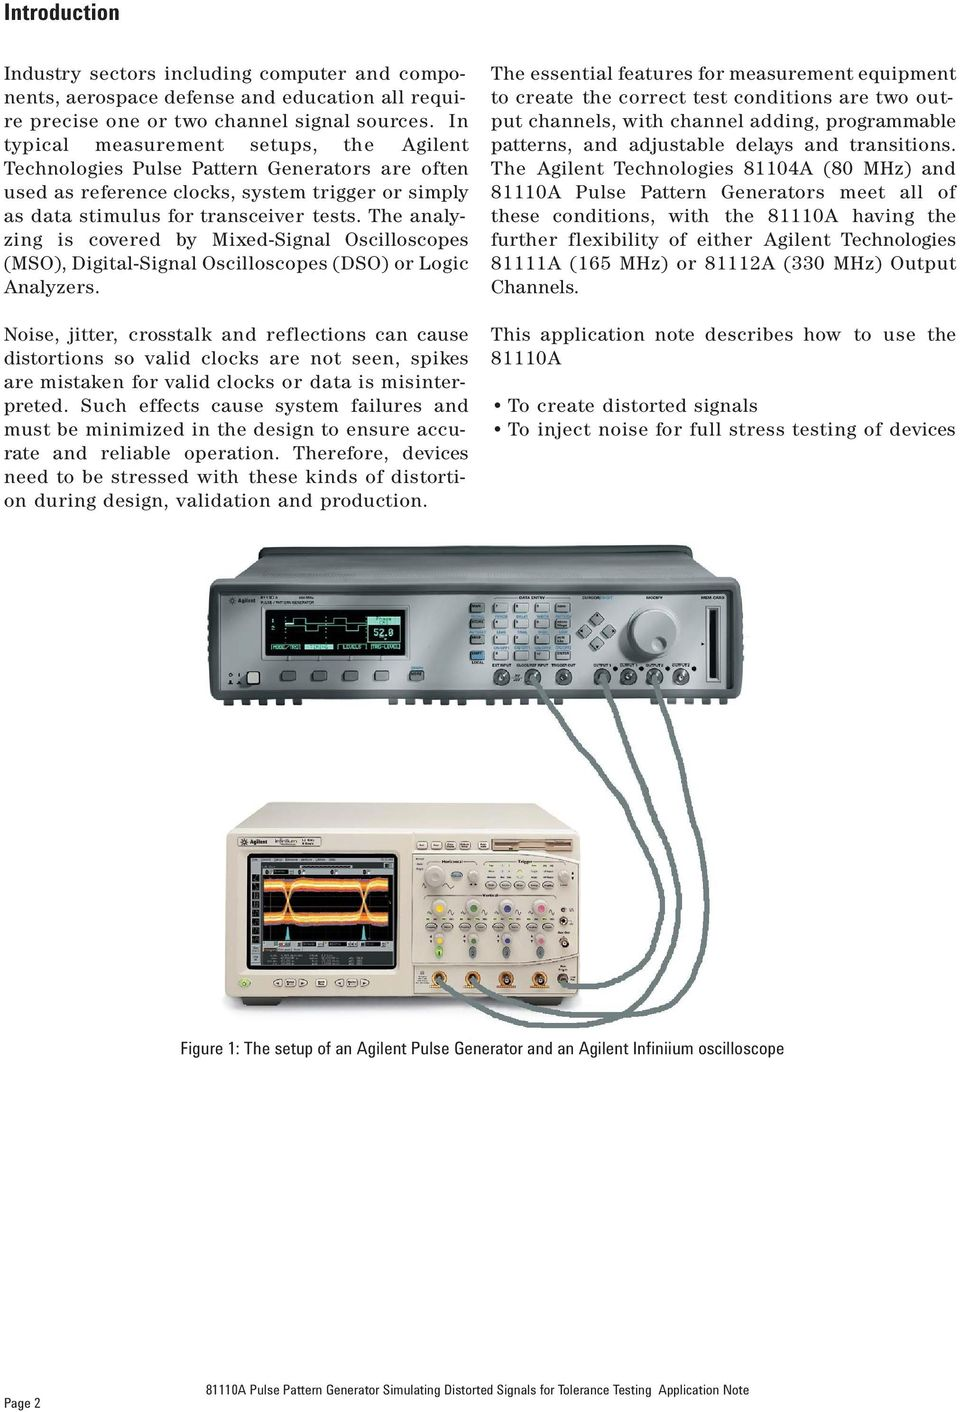 The analyzing is covered by Mixed-Signal Oscilloscopes (MSO), Digital-Signal Oscilloscopes (DSO) or Logic Analyzers.